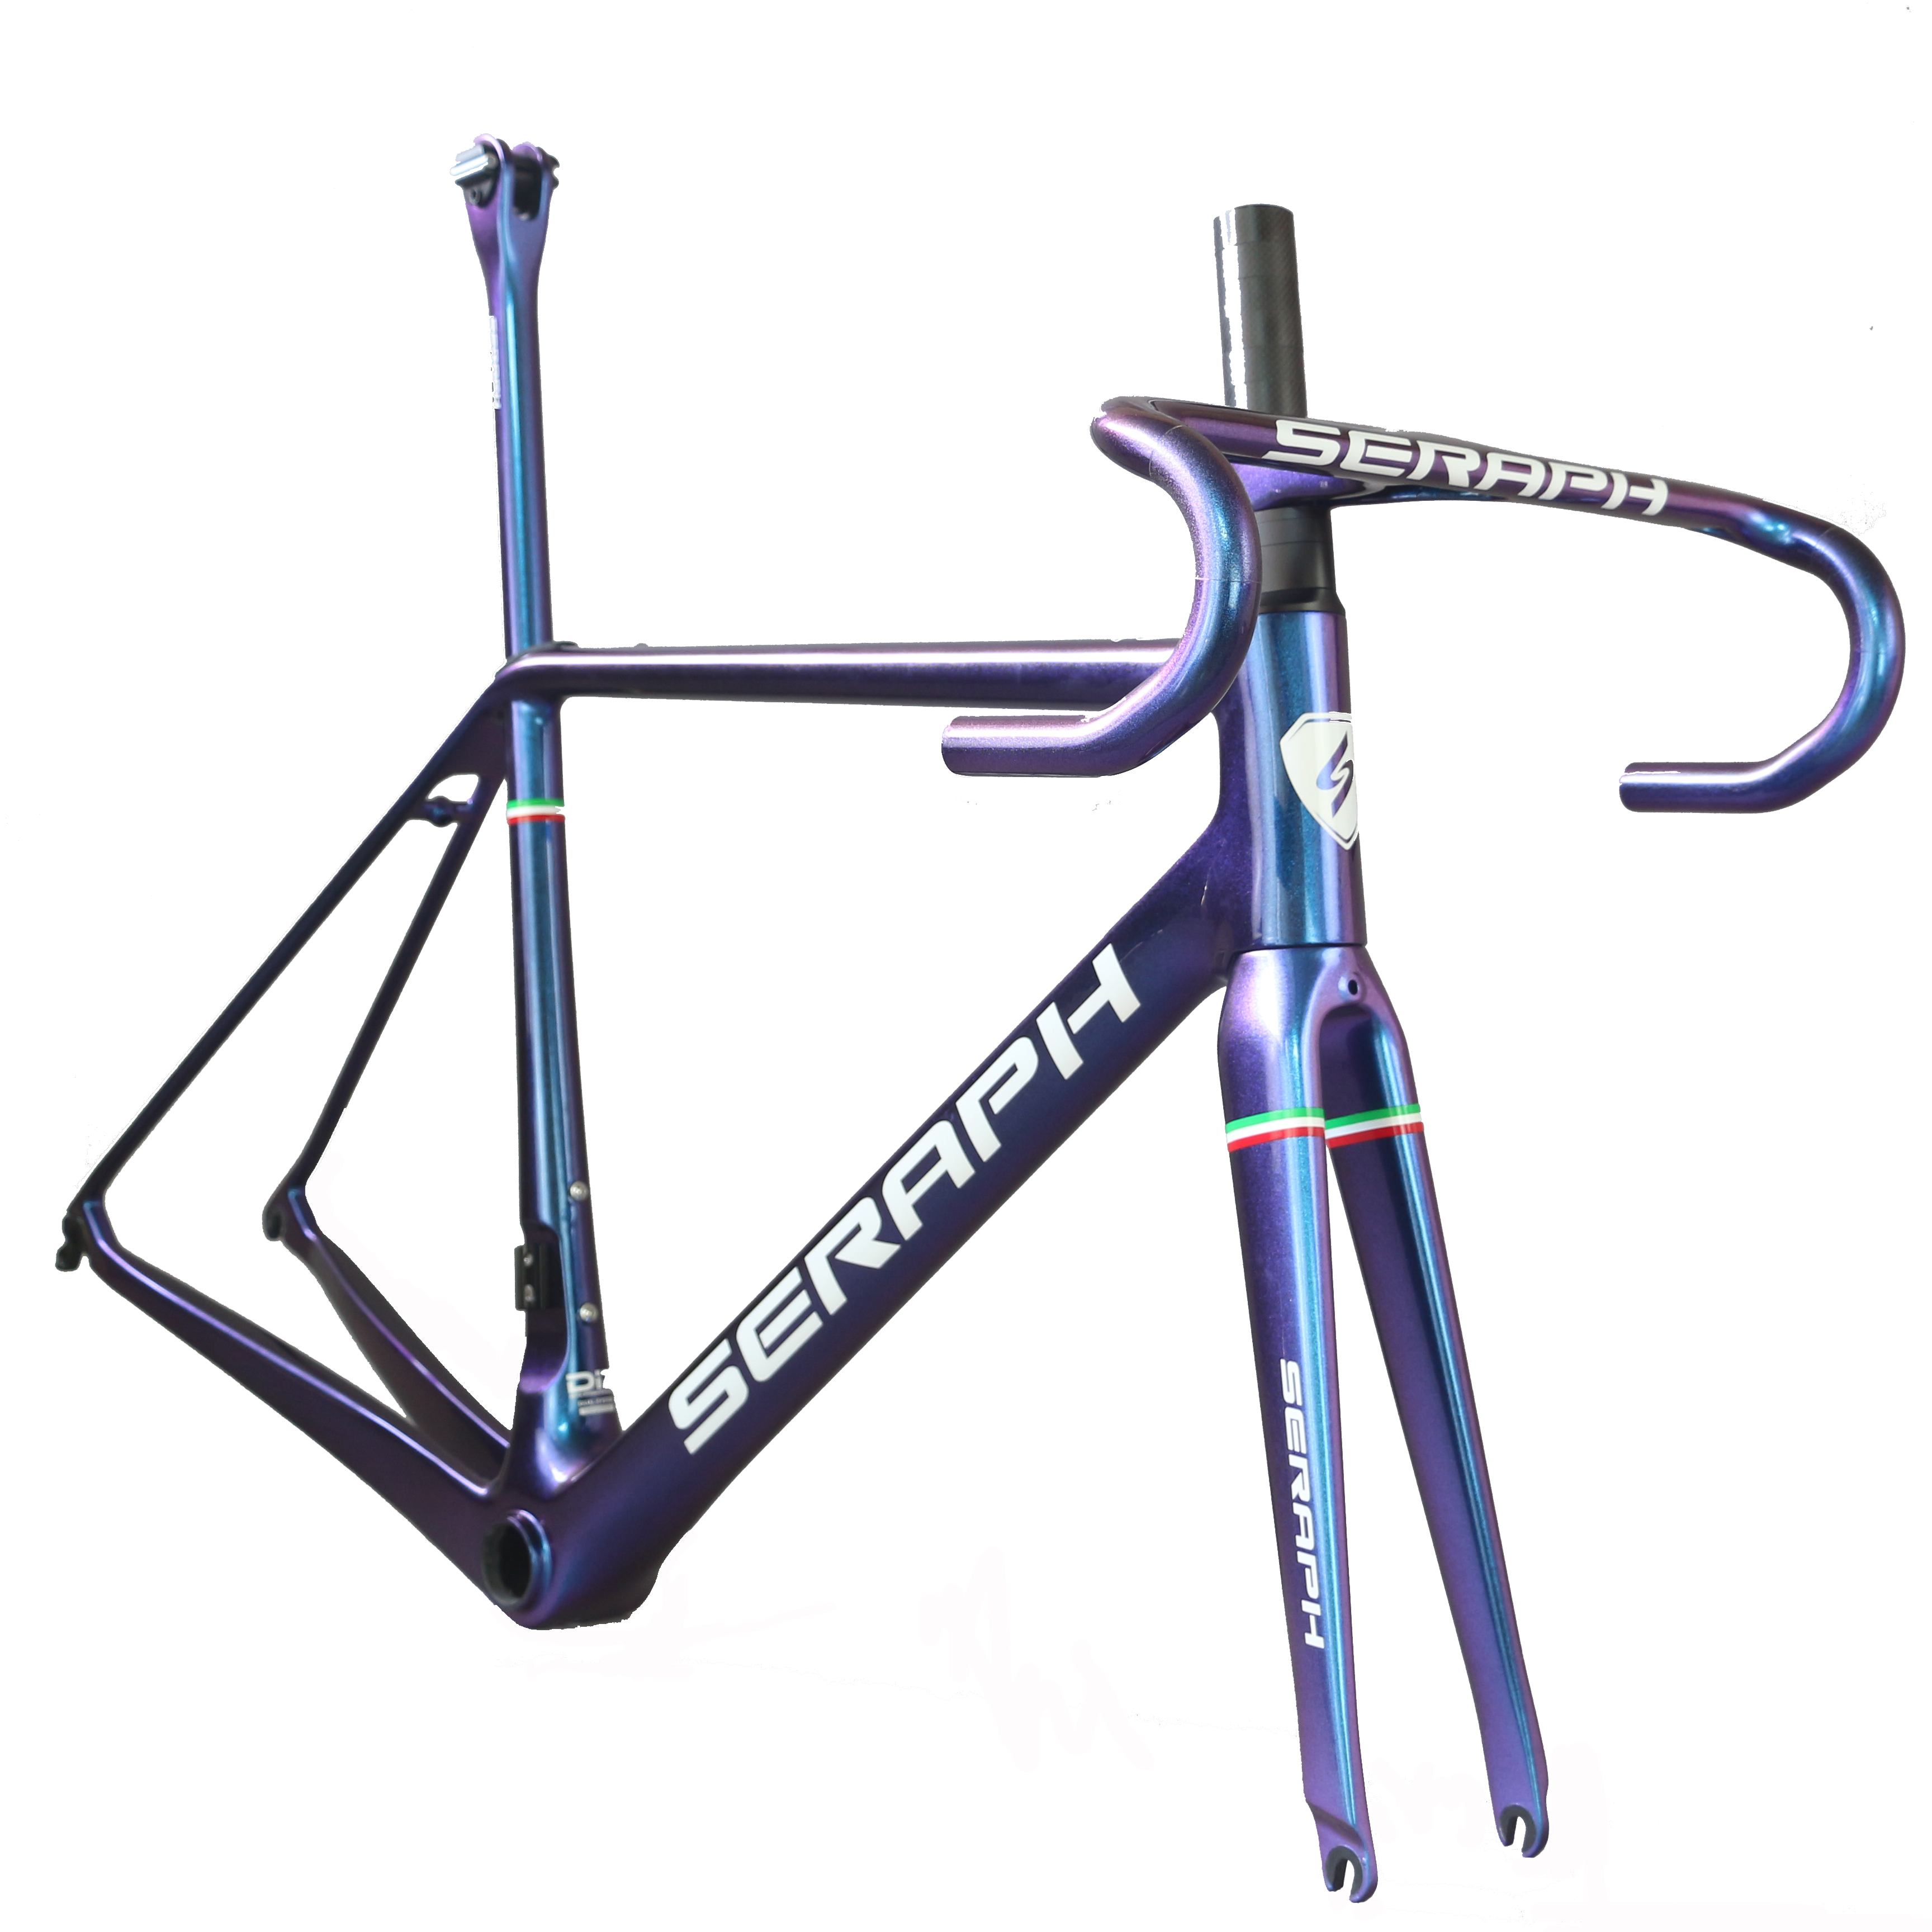 New Ultra Light Road Bike Frame FM629 Custom Chameleon Paint, Frame Di2 Compatible With Internal Cables